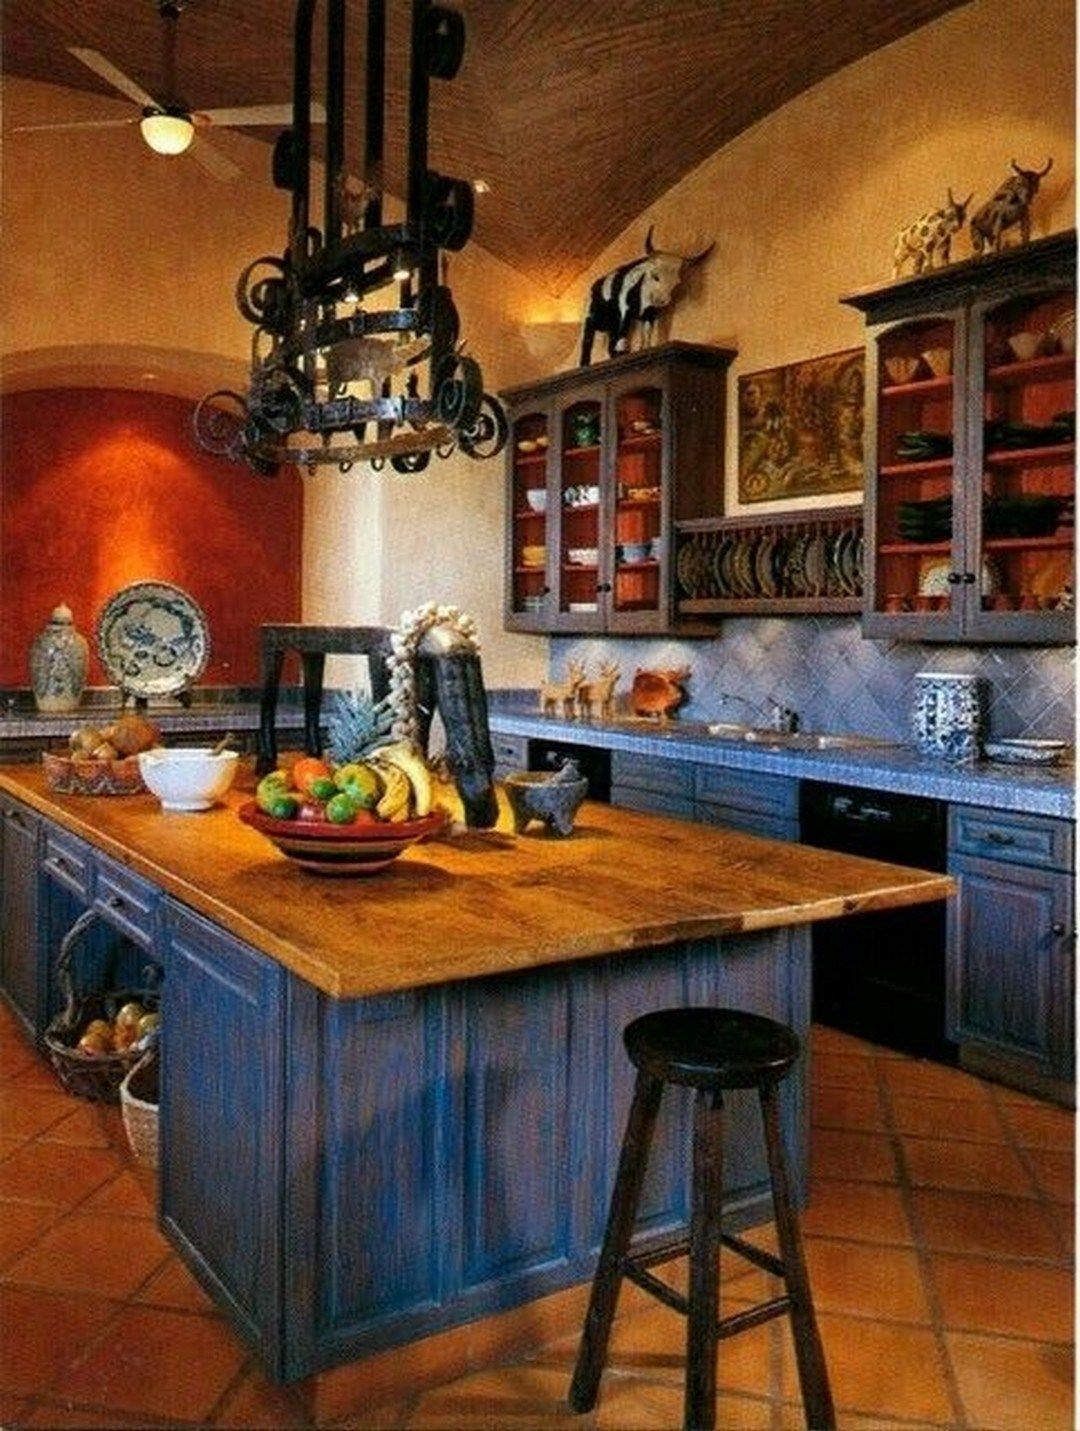 37 Colorful Kitchen Decorating With Mexican Style 17 Mediterranean Kitchen Design Spanish Style Kitchen Mexican Kitchen Decor